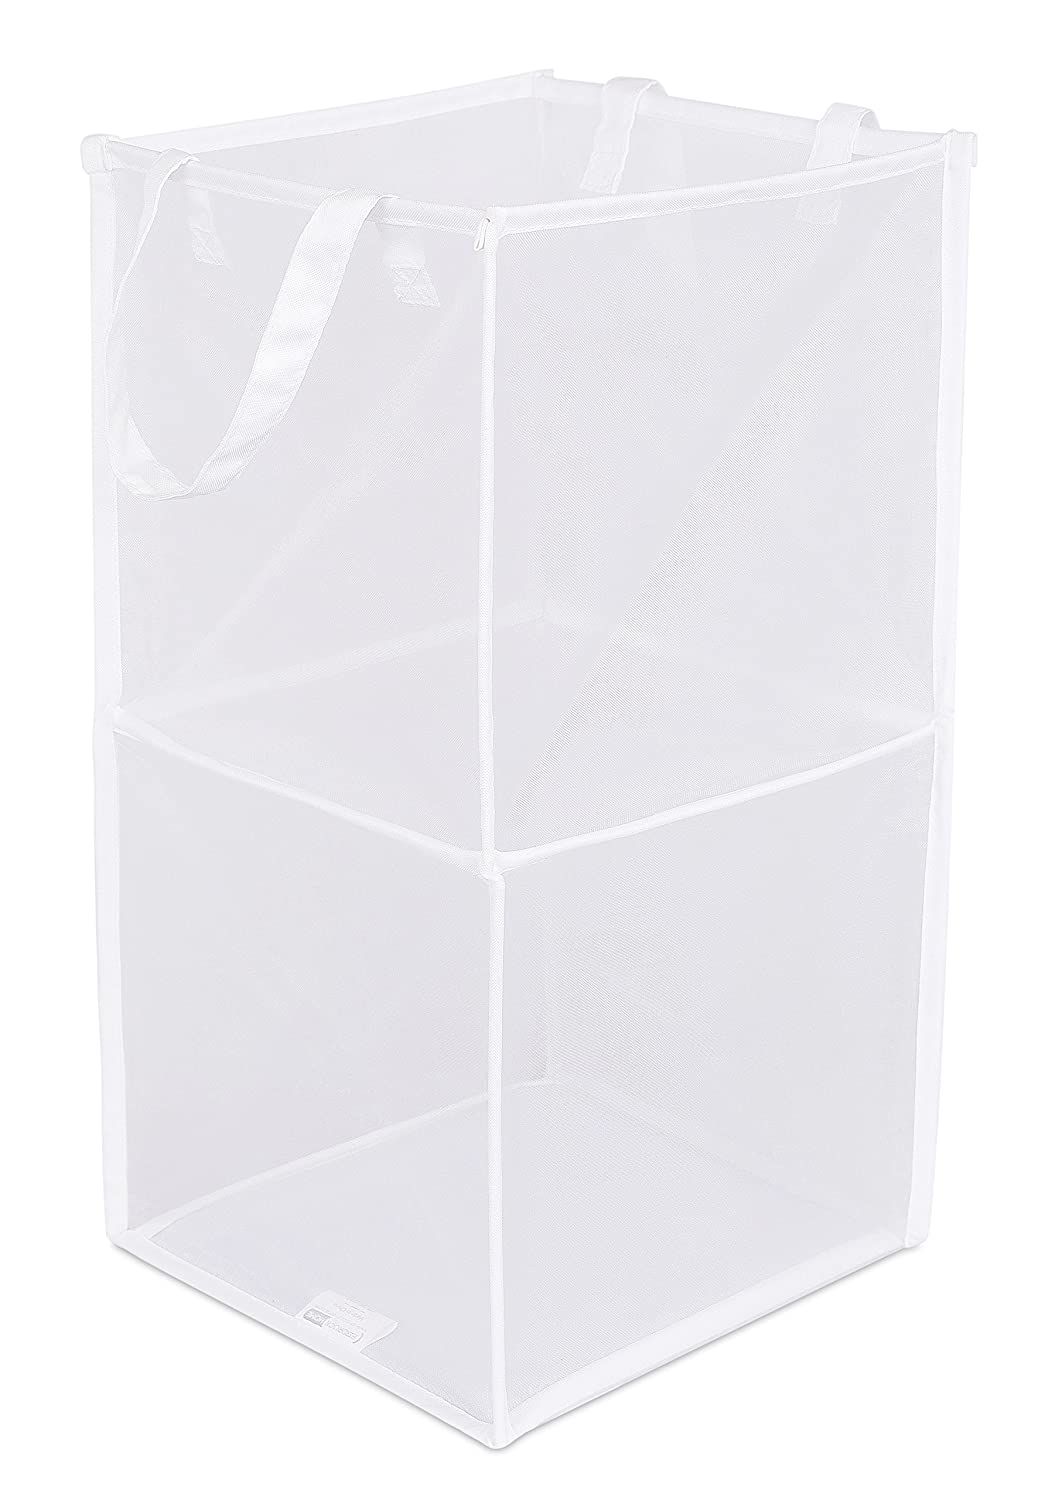 BIRDROCK HOME Pop-Up Magic Hamper - Collapsible Mesh Laundry Hamper - Square - Carry Handles - Dirty Laundry Sorter Mesh Basket - White